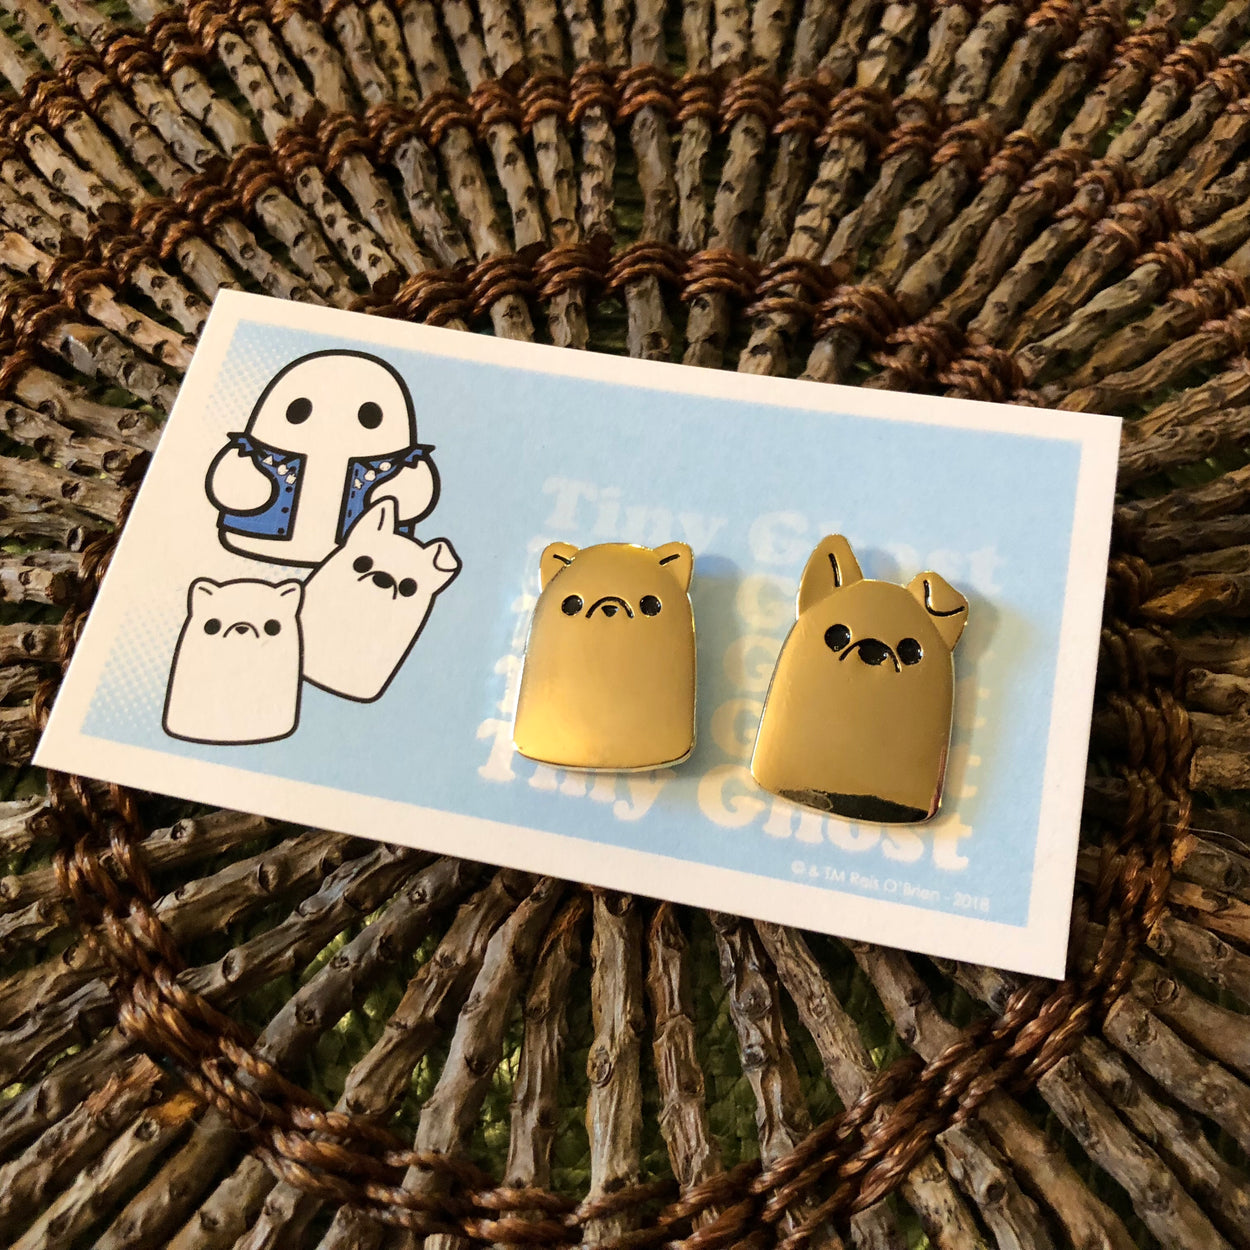 Puppy & Kitty Ghost (Gold) LE Enamel Pin Set